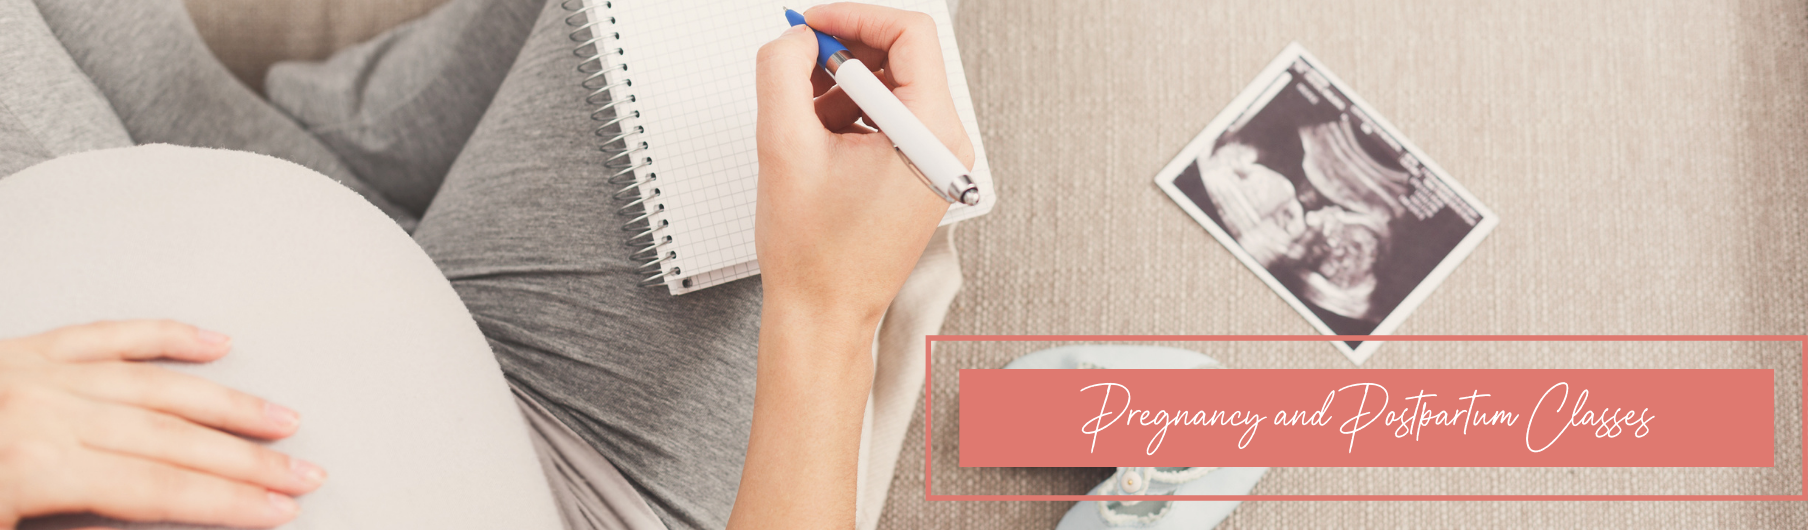 Pregnancy and Postpartum classes from BeauGen